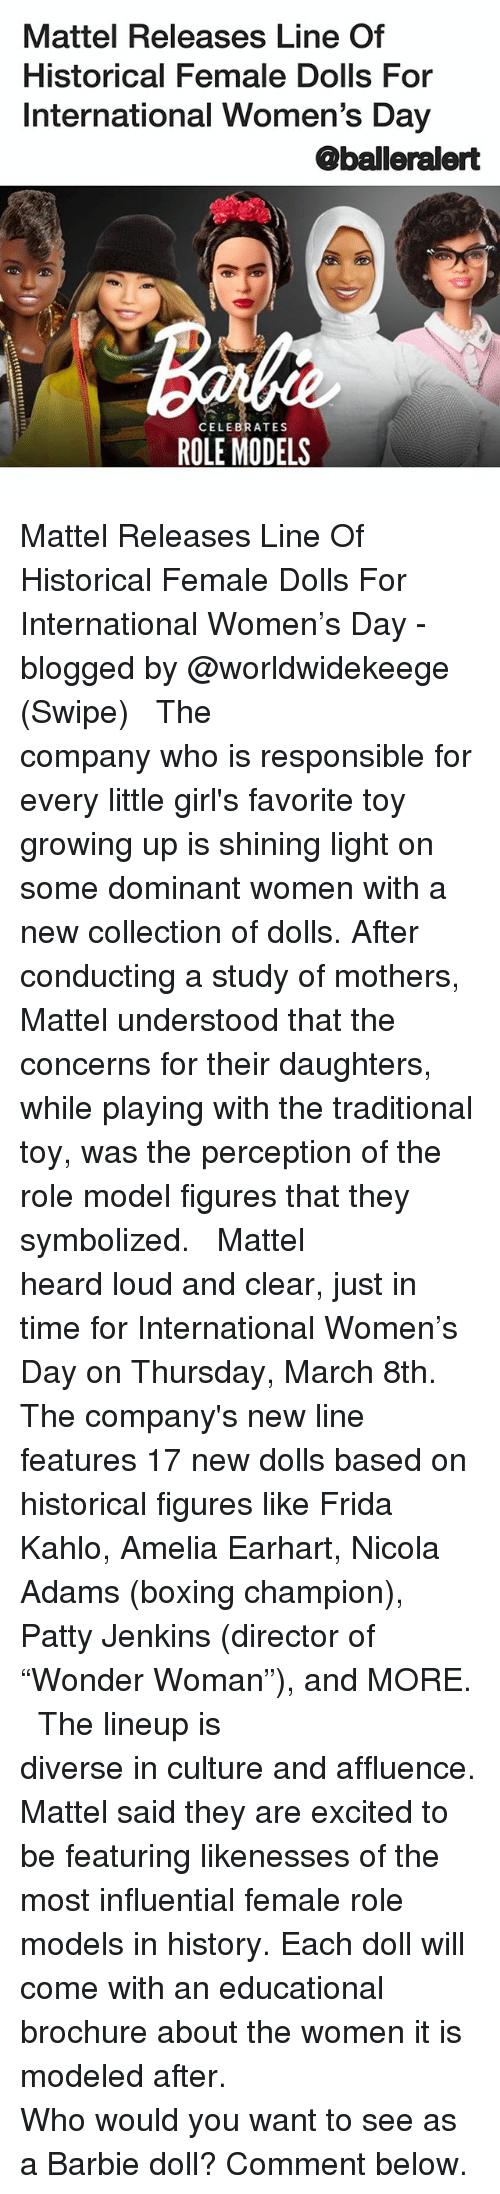 "Barbie, Boxing, and Girls: Mattel Releases Line Of  Historical Female Dolls For  International Women's Day  @balleralert  CELEBRATES  ROLE MODELS Mattel Releases Line Of Historical Female Dolls For International Women's Day - blogged by @worldwidekeege (Swipe) ⠀⠀⠀⠀⠀⠀⠀⠀⠀ ⠀⠀⠀⠀⠀⠀⠀⠀⠀ The company who is responsible for every little girl's favorite toy growing up is shining light on some dominant women with a new collection of dolls. After conducting a study of mothers, Mattel understood that the concerns for their daughters, while playing with the traditional toy, was the perception of the role model figures that they symbolized. ⠀⠀⠀⠀⠀⠀⠀⠀⠀ ⠀⠀⠀⠀⠀⠀⠀⠀⠀ Mattel heard loud and clear, just in time for International Women's Day on Thursday, March 8th. The company's new line features 17 new dolls based on historical figures like Frida Kahlo, Amelia Earhart, Nicola Adams (boxing champion), Patty Jenkins (director of ""Wonder Woman""), and MORE. ⠀⠀⠀⠀⠀⠀⠀⠀⠀ ⠀⠀⠀⠀⠀⠀⠀⠀⠀ The lineup is diverse in culture and affluence. Mattel said they are excited to be featuring likenesses of the most influential female role models in history. Each doll will come with an educational brochure about the women it is modeled after. ⠀⠀⠀⠀⠀⠀⠀⠀⠀ ⠀⠀⠀⠀⠀⠀⠀⠀⠀ Who would you want to see as a Barbie doll? Comment below."